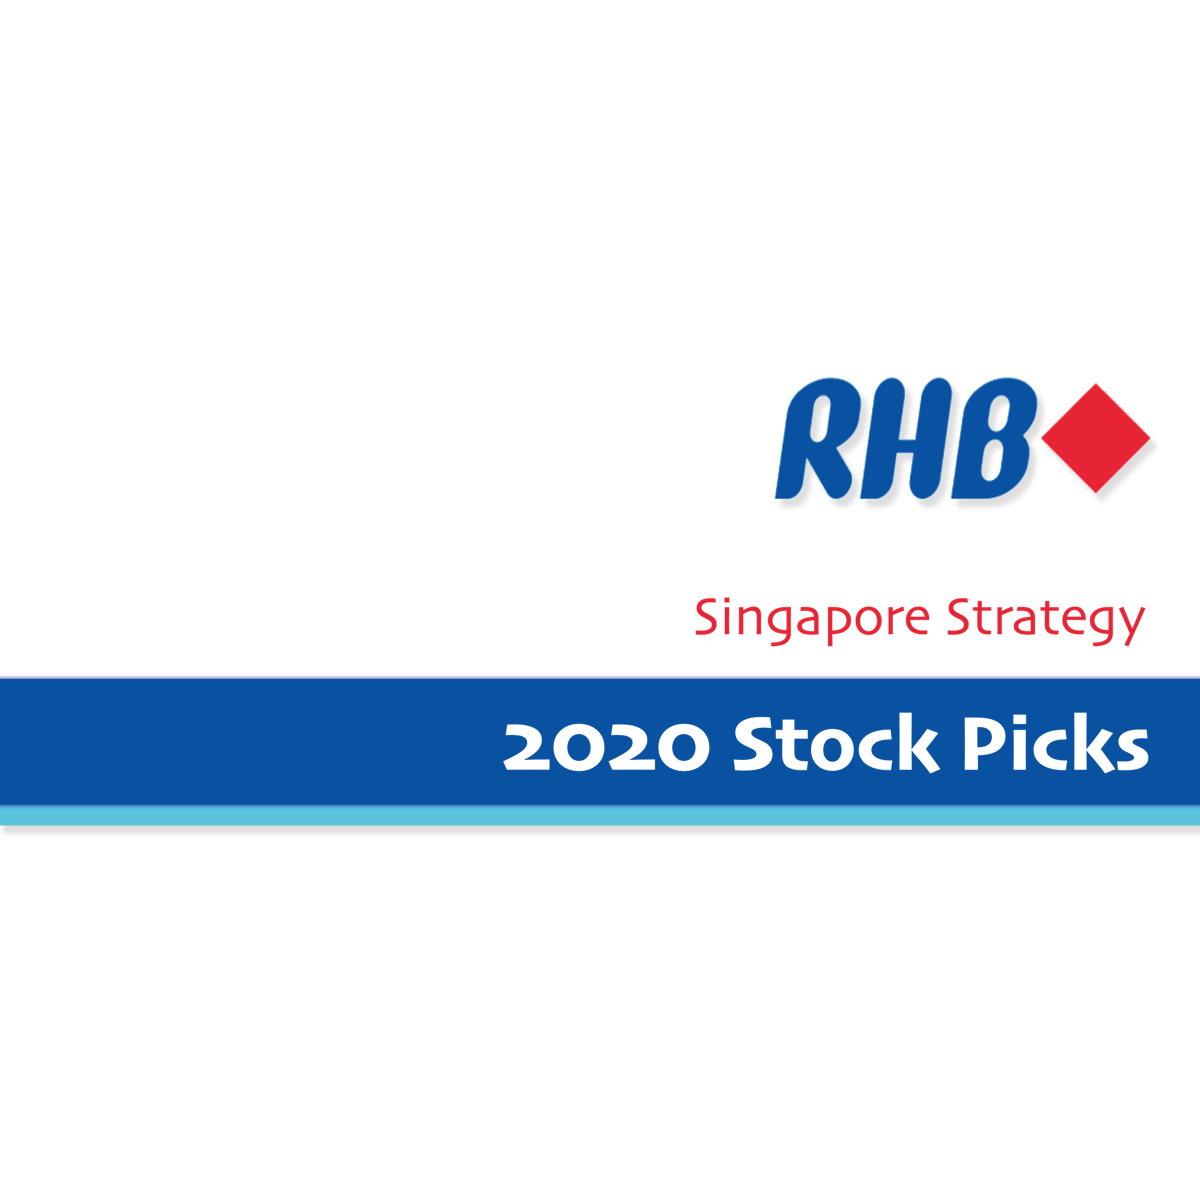 2020 Sector Outlook & Stock Picks - RHB Invest | SGinvestors.io